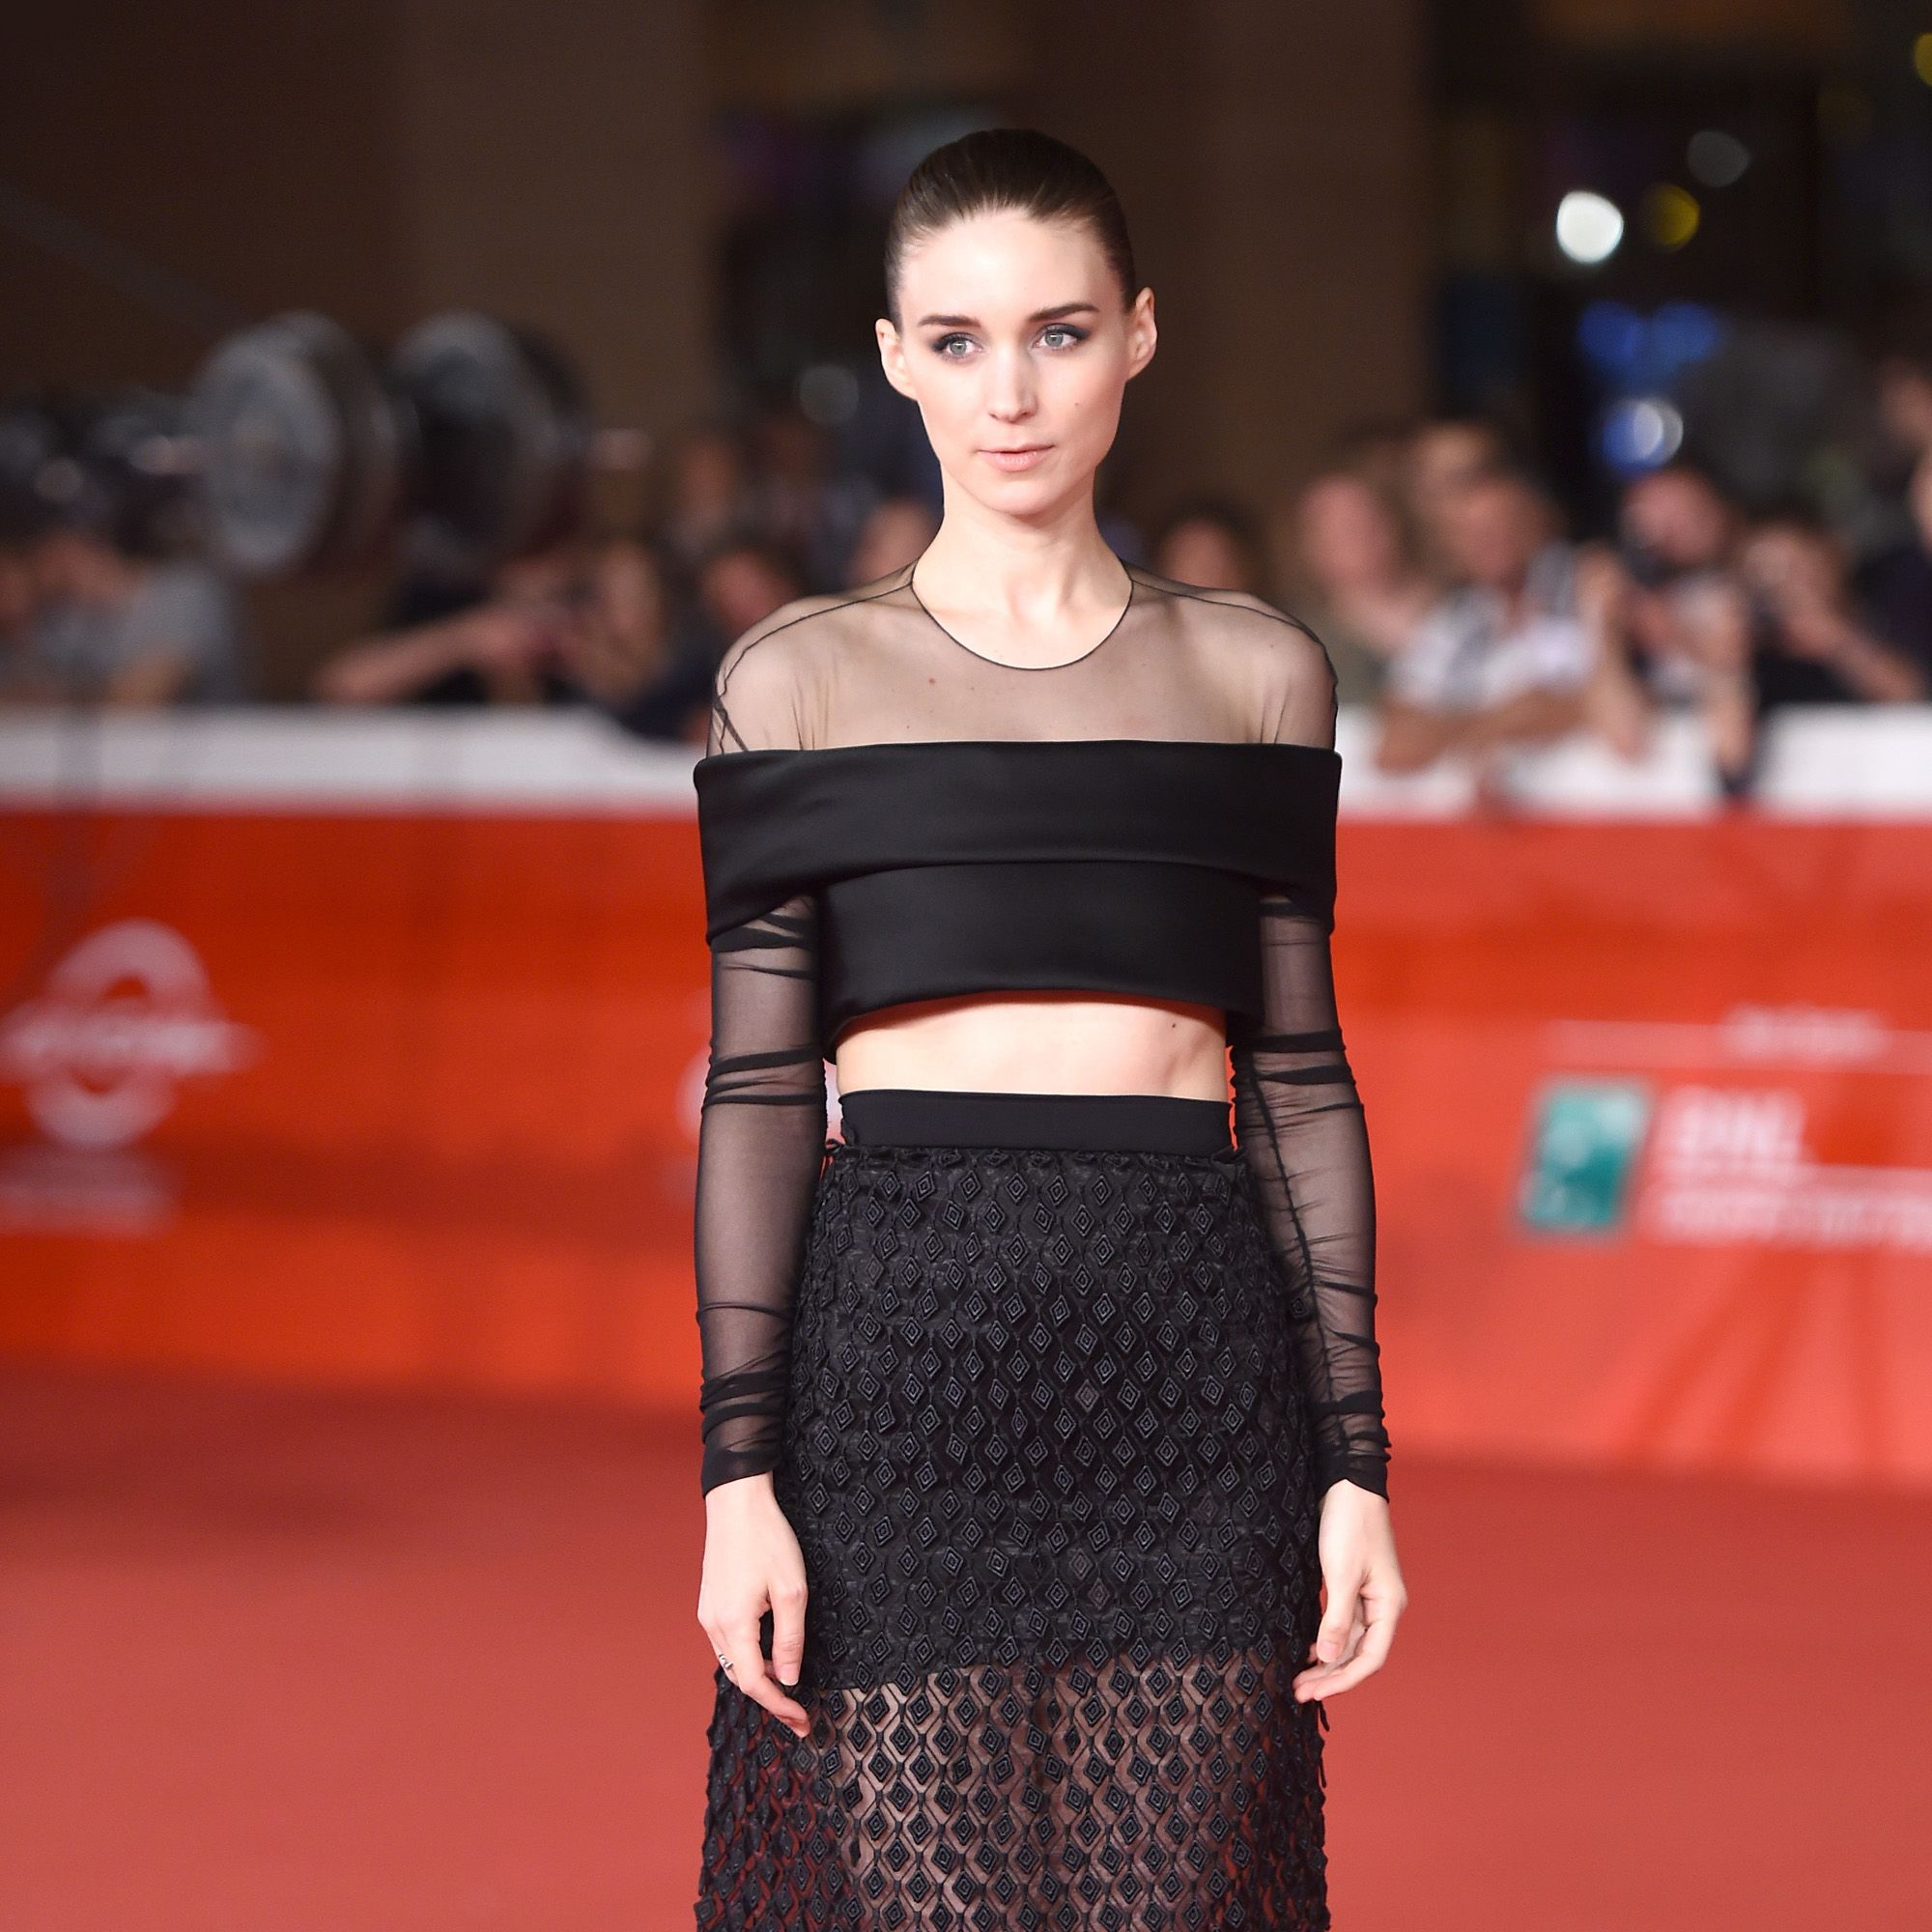 Actress Rooney Mara is the perfect model for Balenciaga's new creative director, Alexander Wang, to show off his designs.